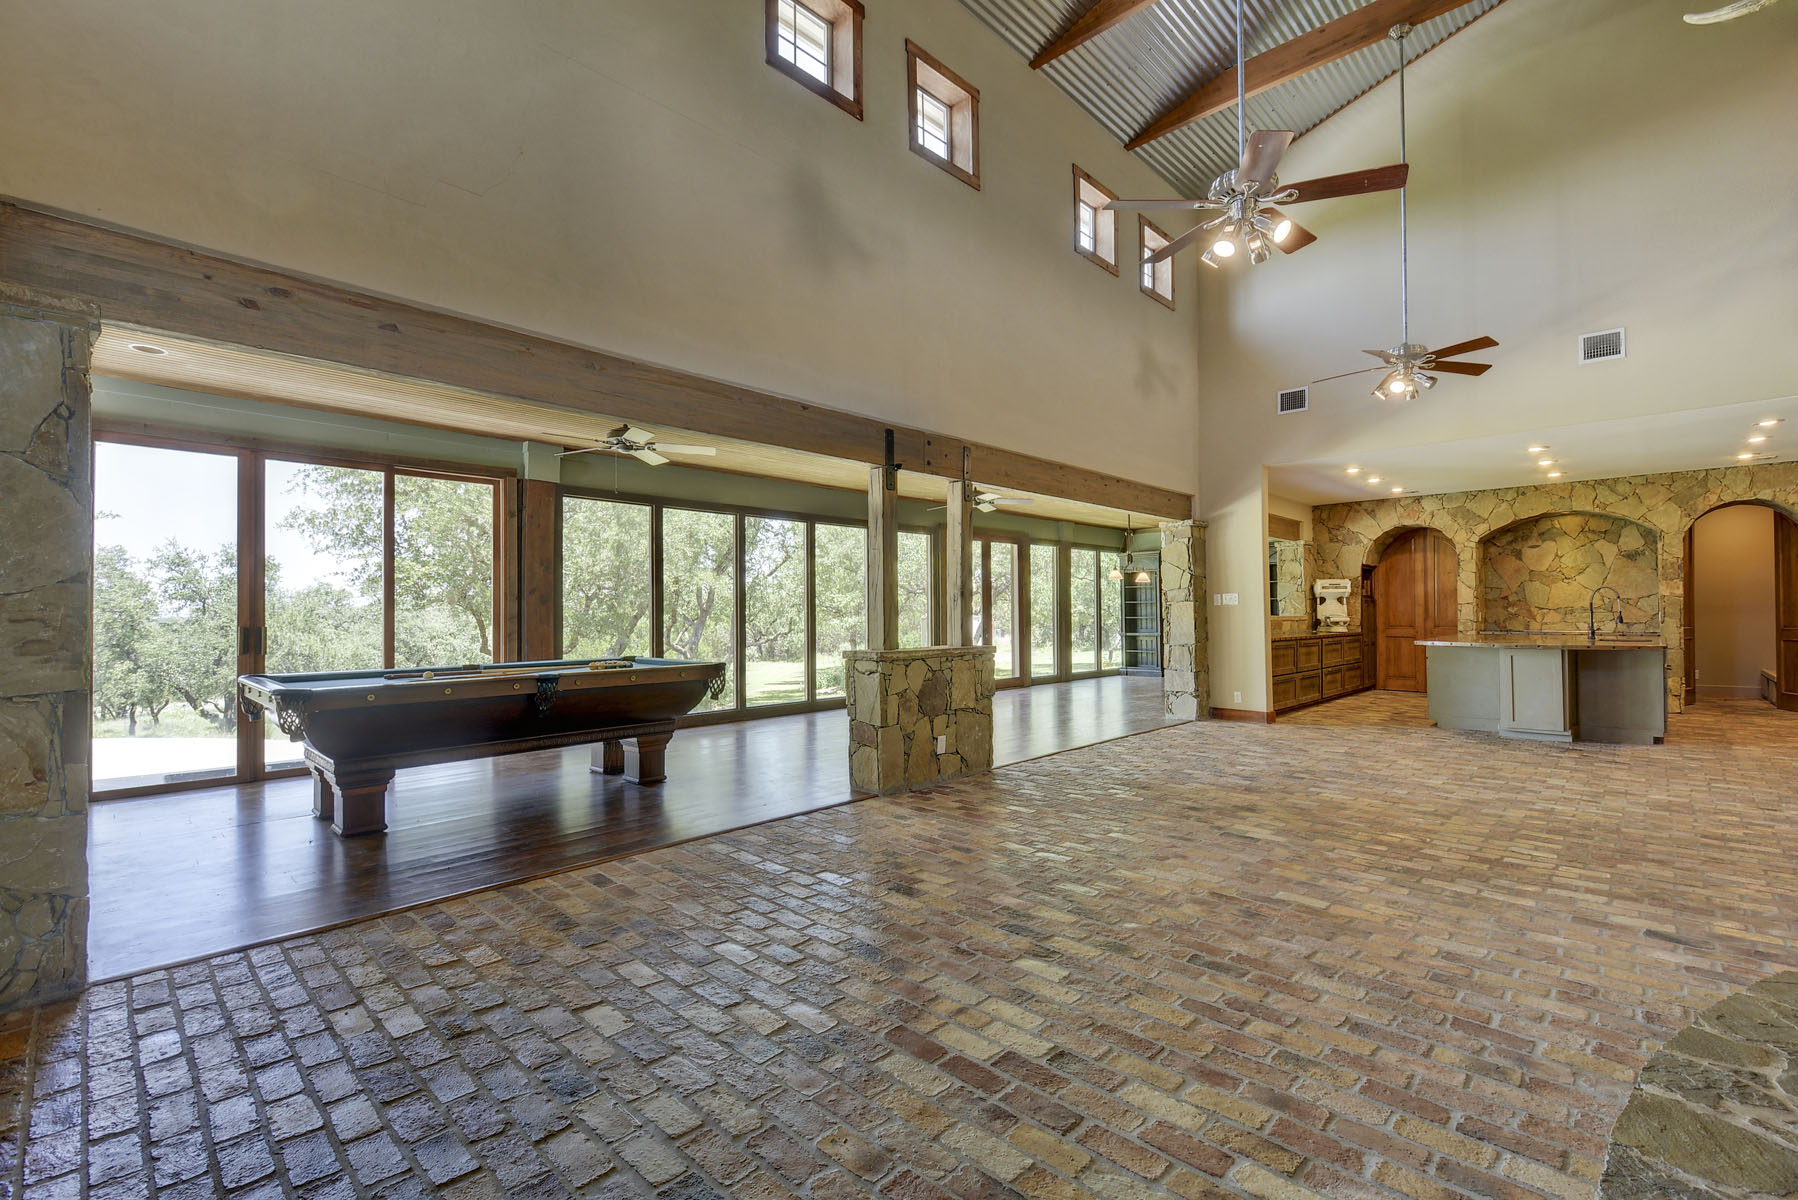 Additional photo for property listing at Panoramic View of the Texas Hill Country 140 Granite Ridge Dr Spicewood, Texas 78669 Estados Unidos